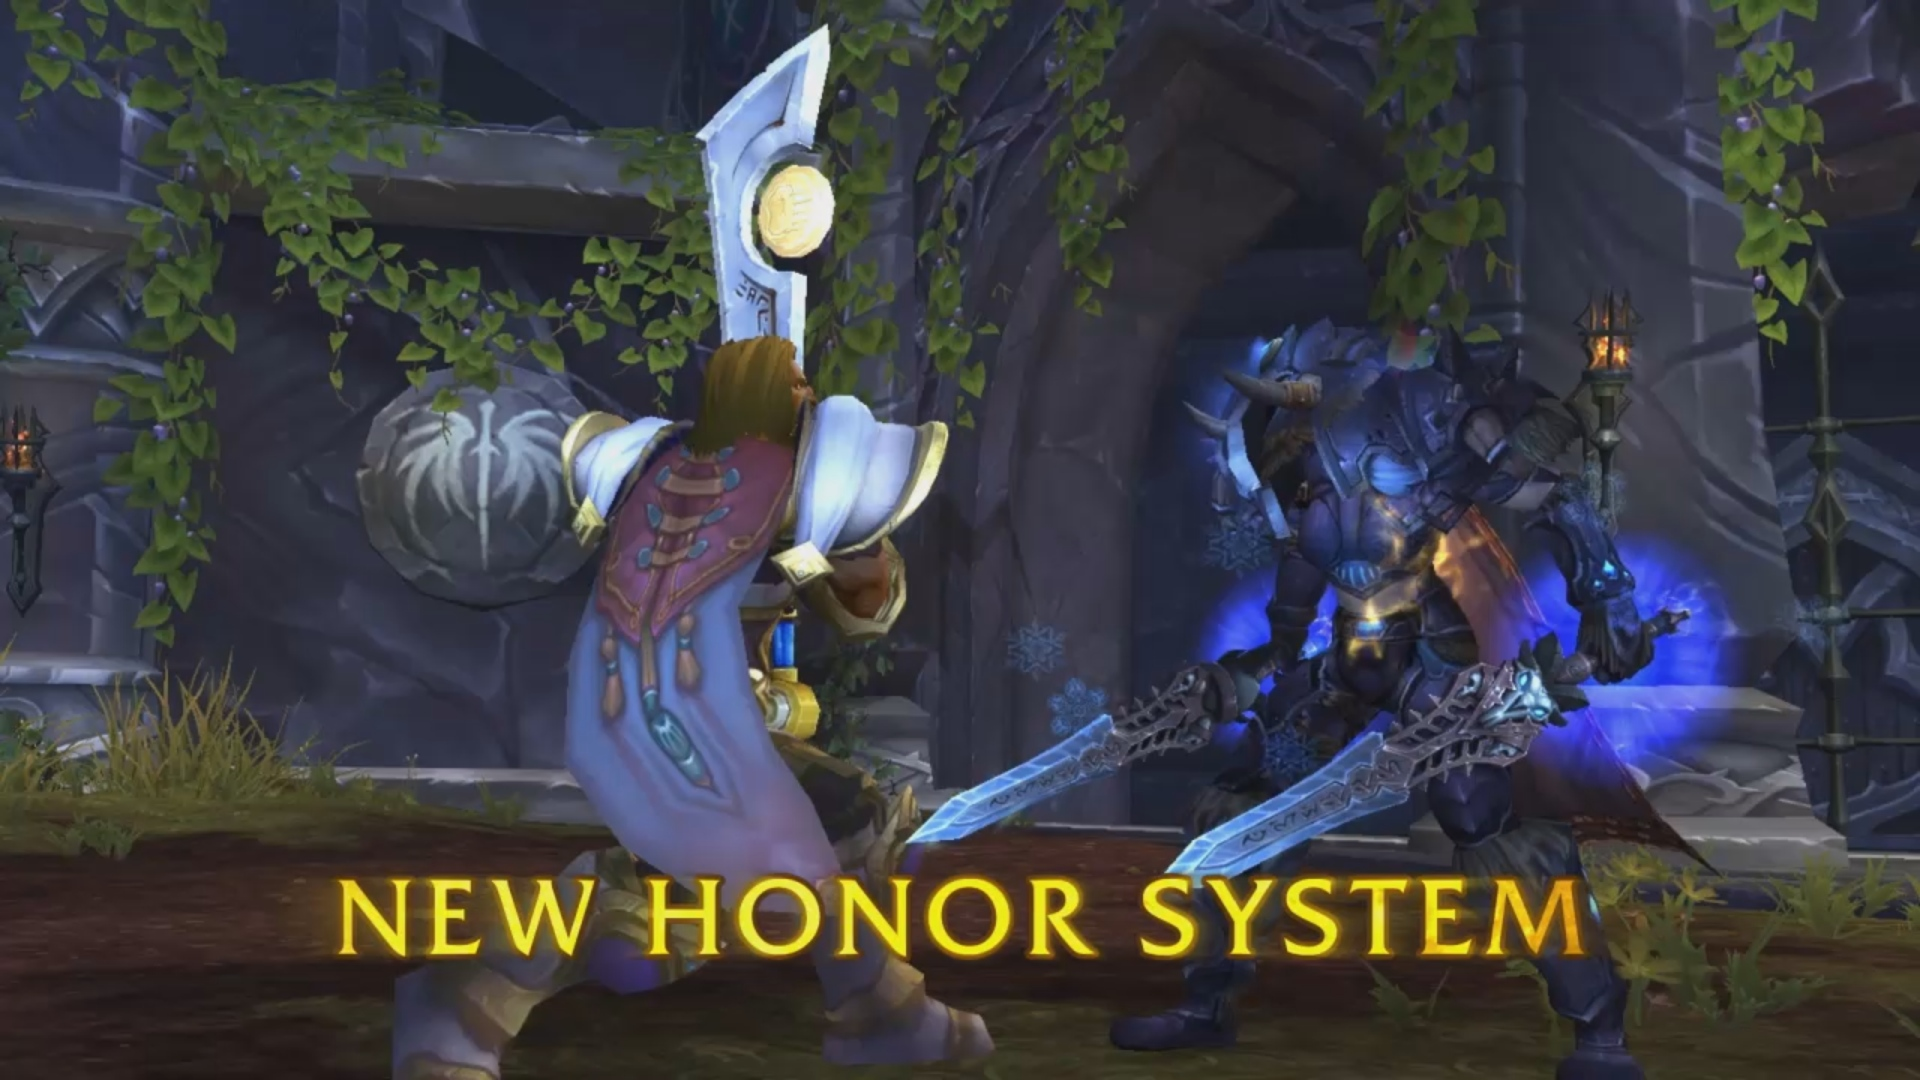 Wow honor system PvP